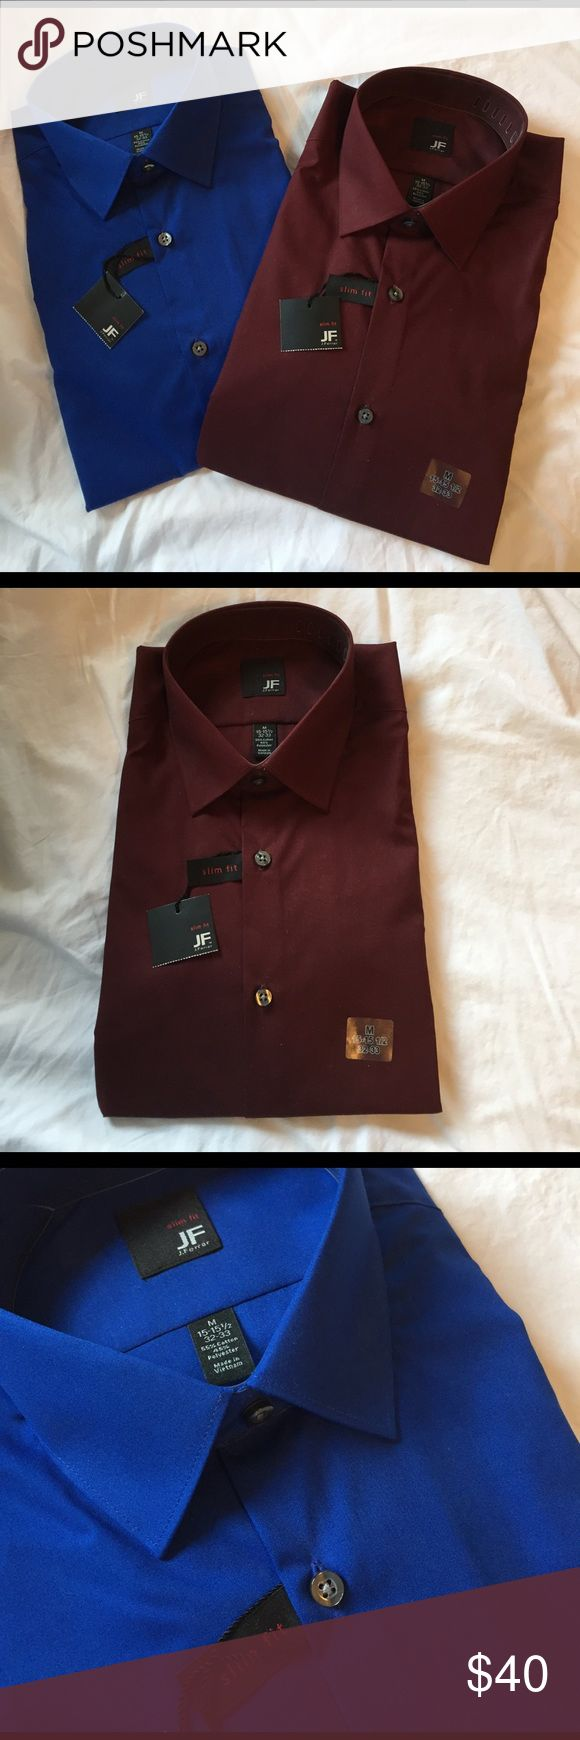 Bundle of 2 Men's Long Sleeve Button Downs Brand new, with tags. Unworn and still folded and packed. Measurements are 15-15 1/2 - 32-33. Slim fit. 55% Cotton and 45% polyester. Colors are a nice cobalt blue and dark red maroon color. PRICES ARE FIRM ON NWT ITEMS ALONE BUT I WILL DO MAJOR DISCOUNTS ON ANY BUNDLE. Not trying to make profit, just trying to clear up some space! jf j.ferrar Shirts Dress Shirts